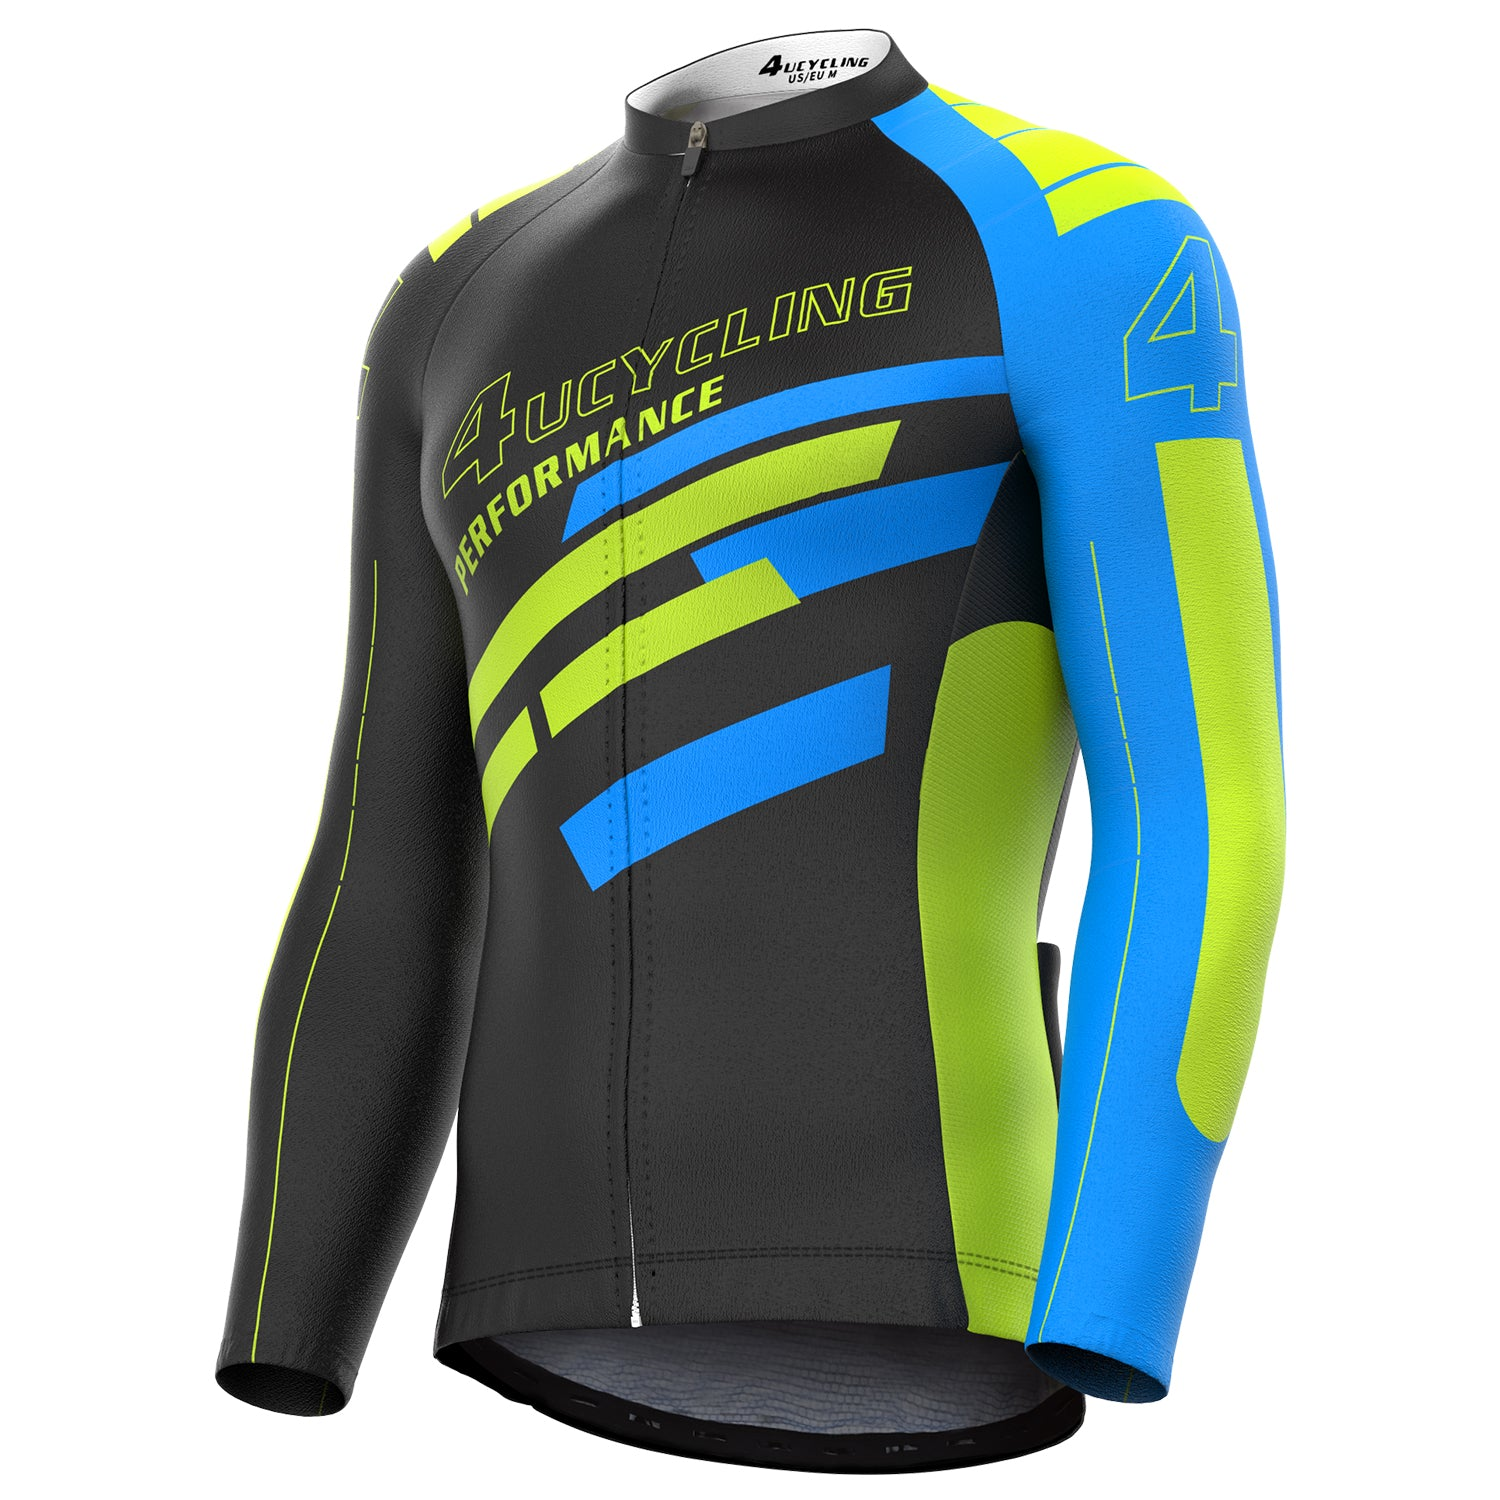 Tempo - Men's Full Zip Long Sleeve Cycling Jersey, Blue Dynamic image